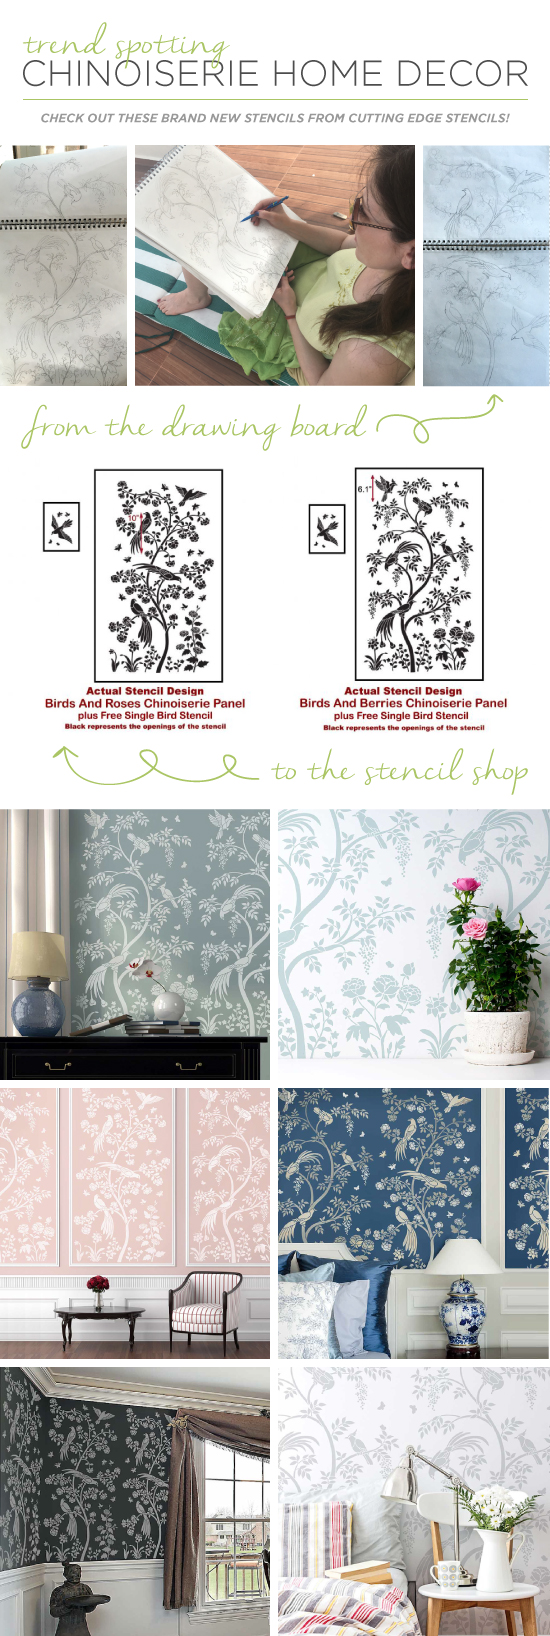 DIY Chinoiserie Wall Mural Panels from Cutting Edge Stencils achieve a wallpaper look. http://bit.ly/ChinoiserieStencils